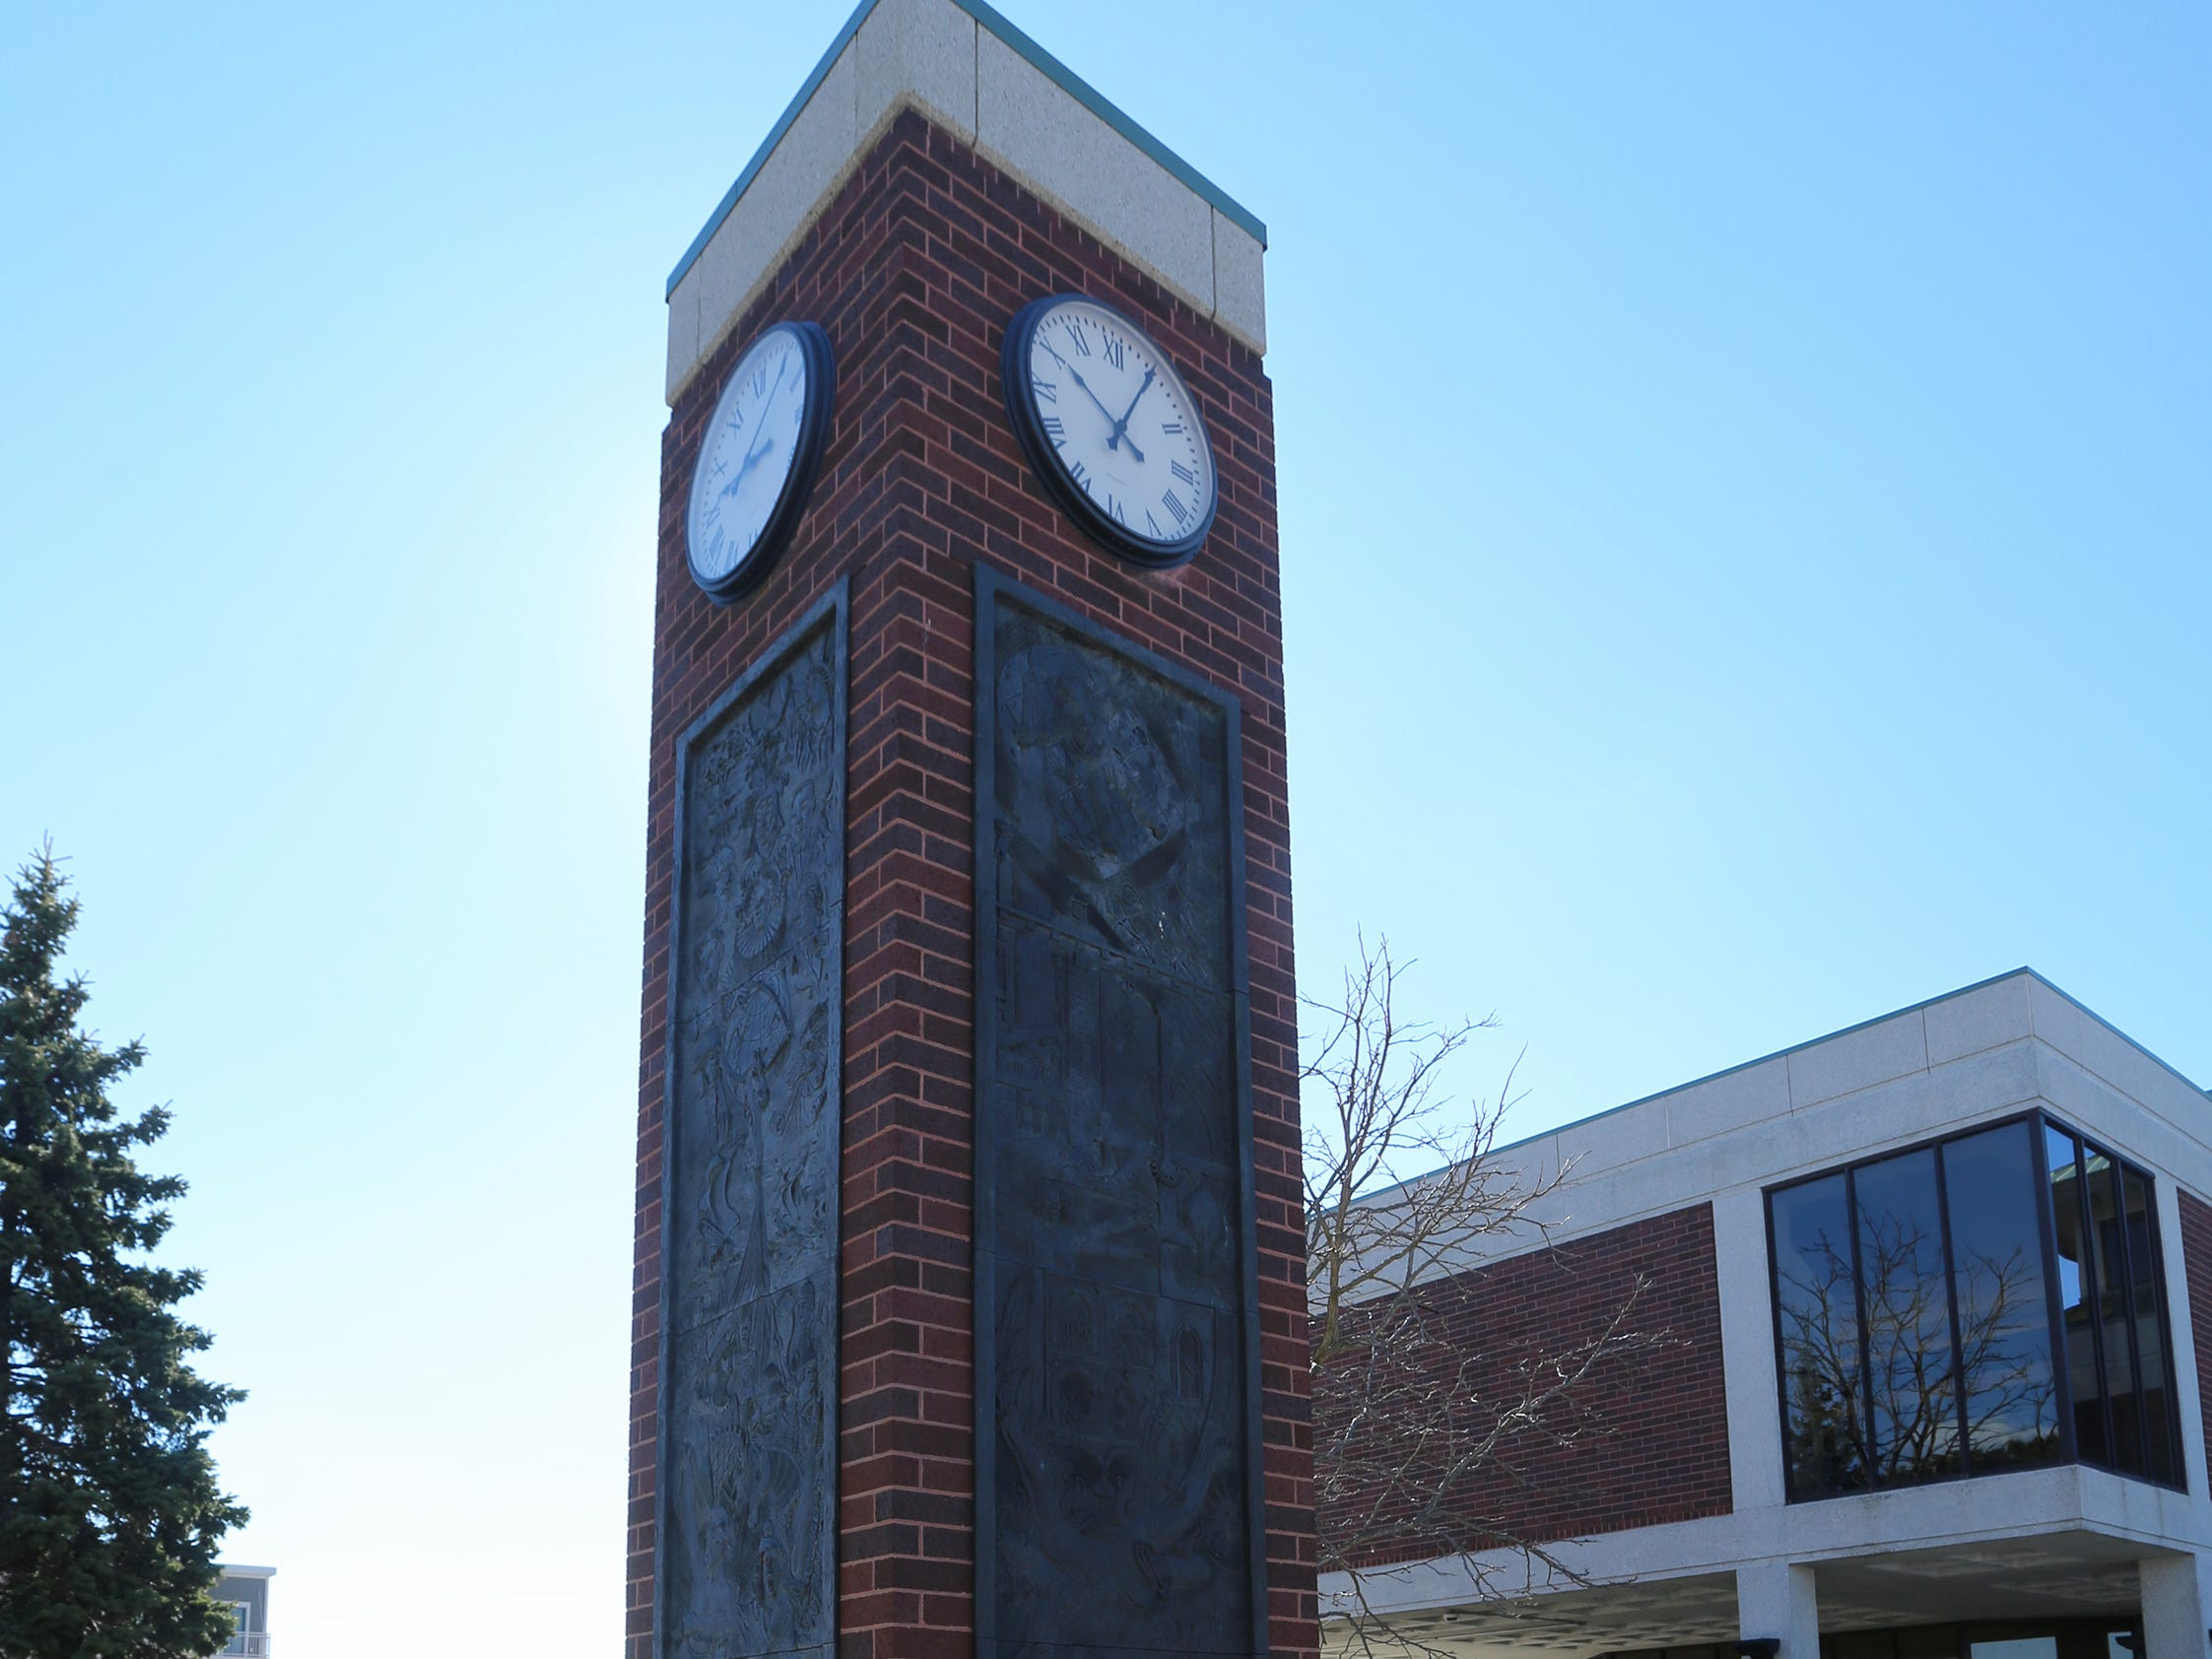 A view of the clock tower which includes a view of the quiet room area at Mead Public Library, Tuesday, April 9, 2019, in Sheboygan, Wis.